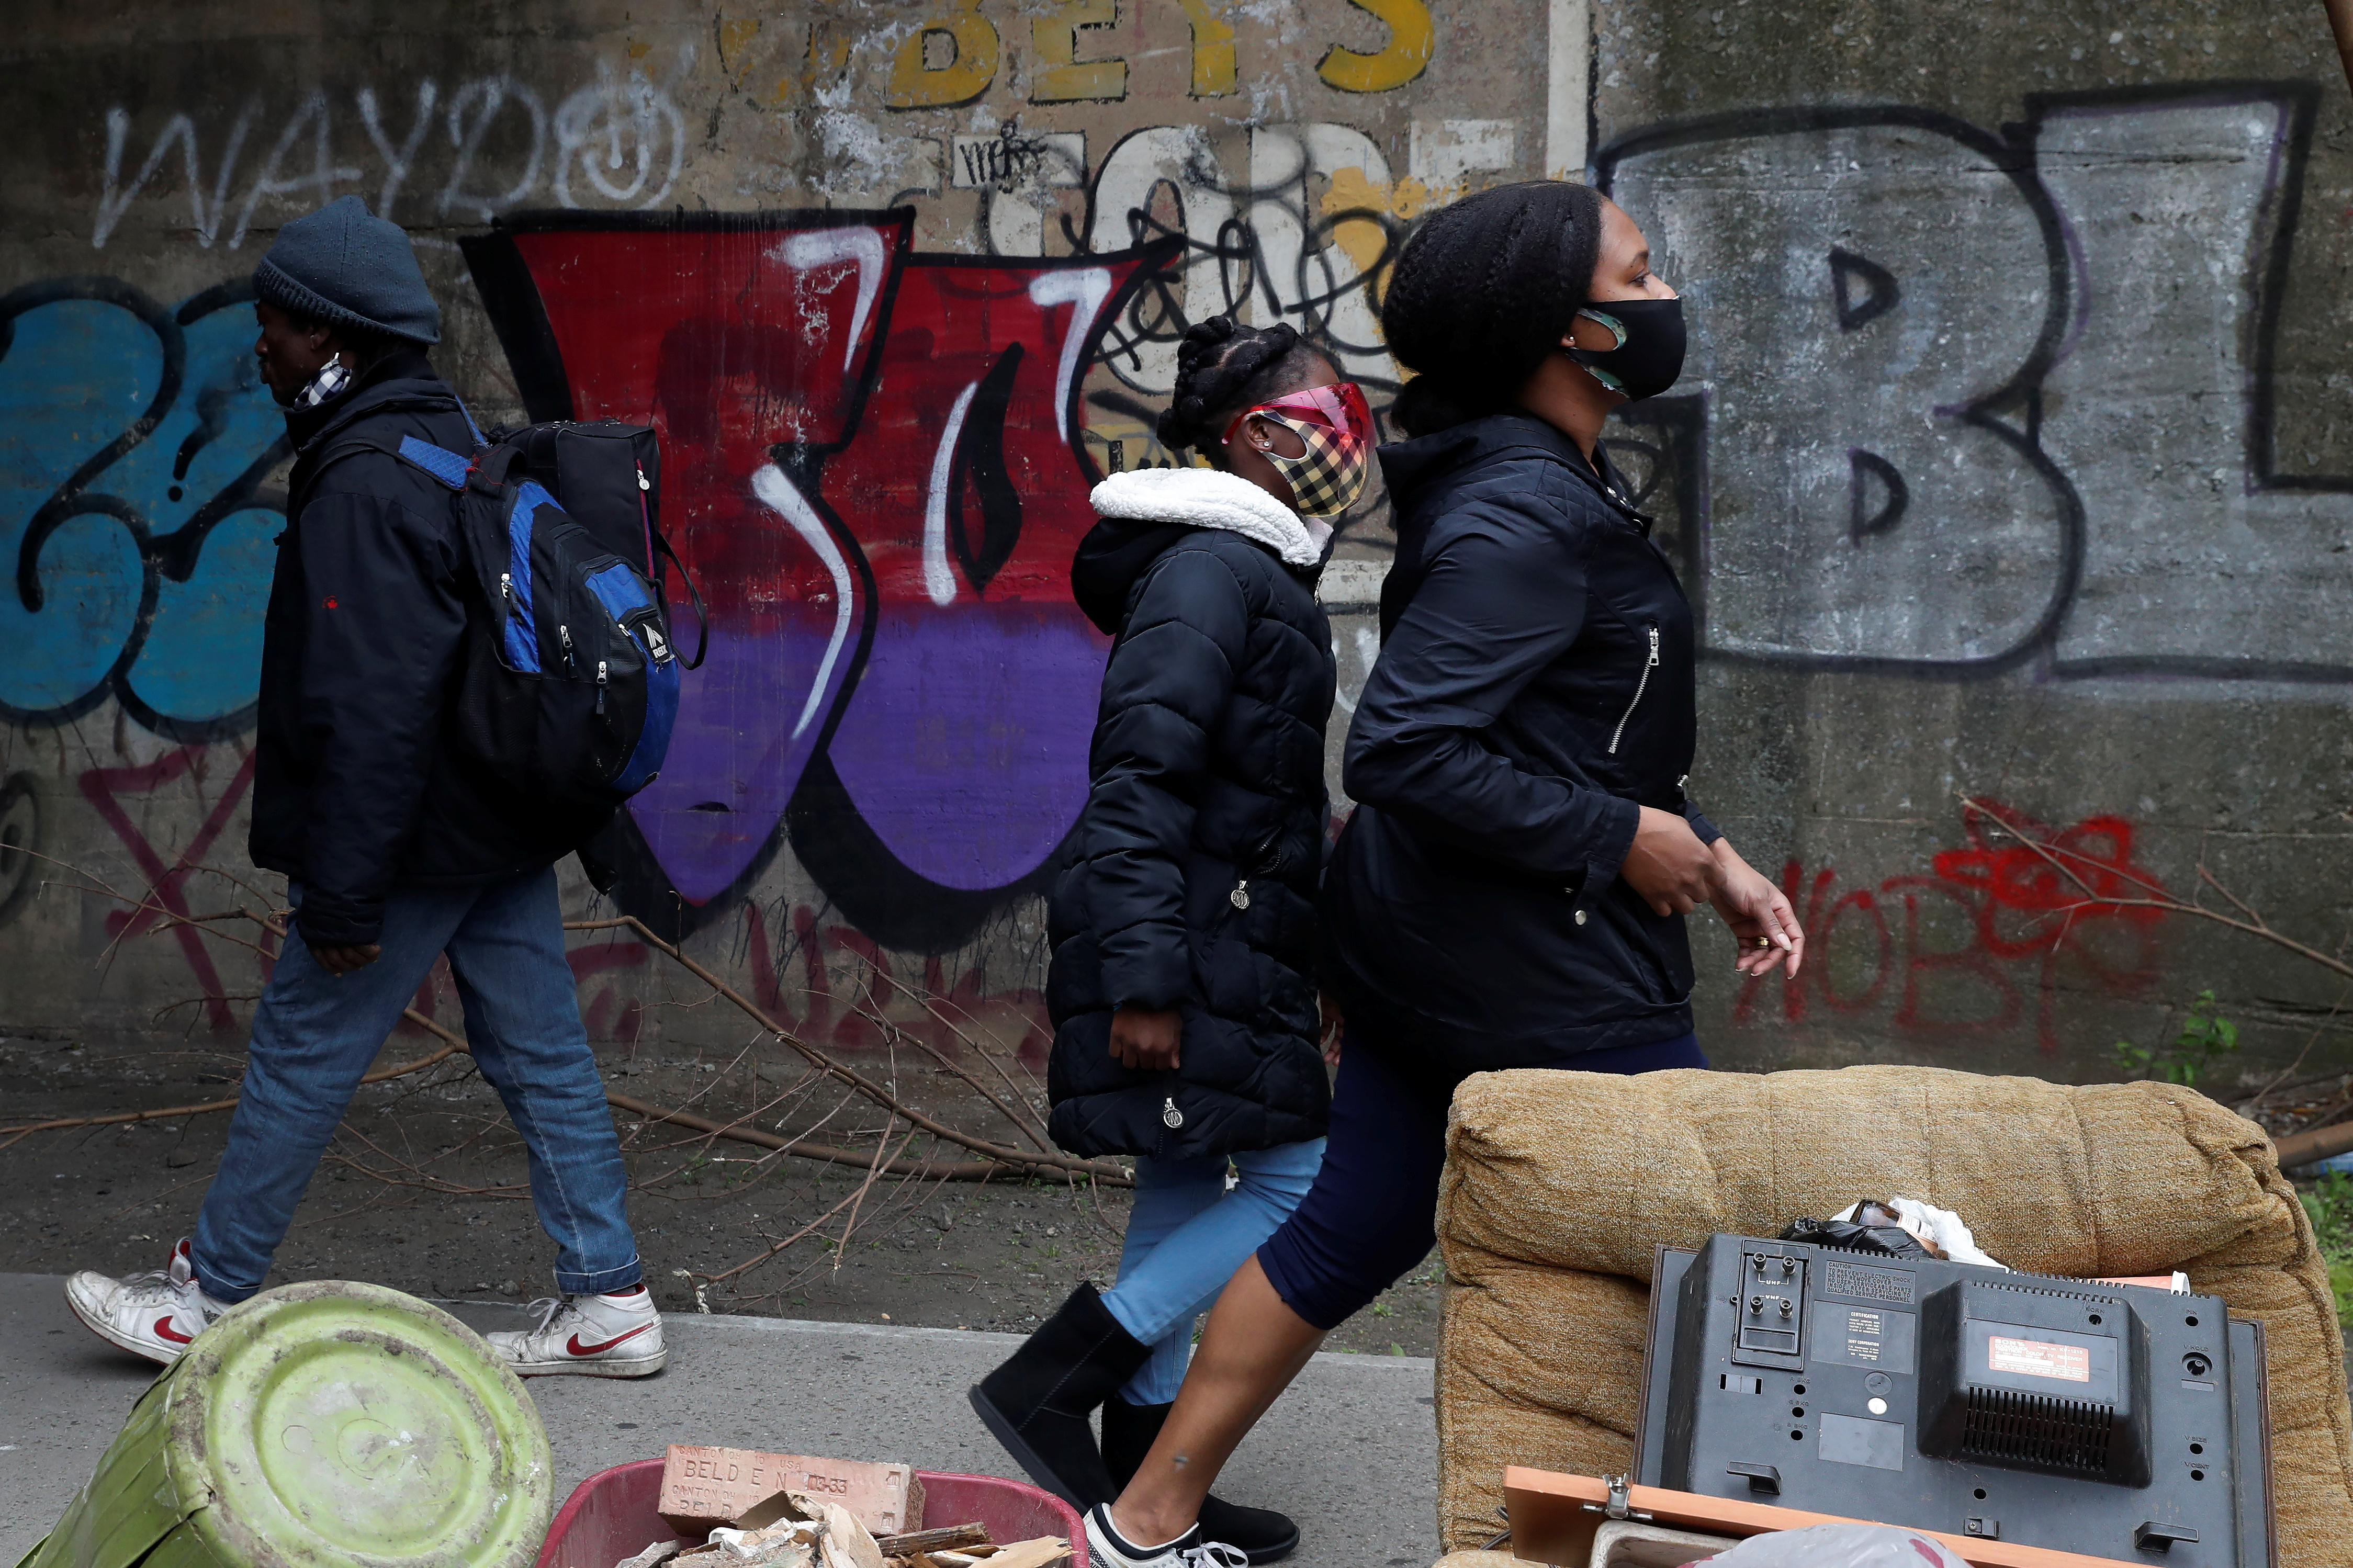 People wearing protective masks walk by a man not wearing a mask over his nose under the subway in the Brownsville section of the Brooklyn borough of New York City, U.S., May 3, 2021. REUTERS/Shannon Stapleton